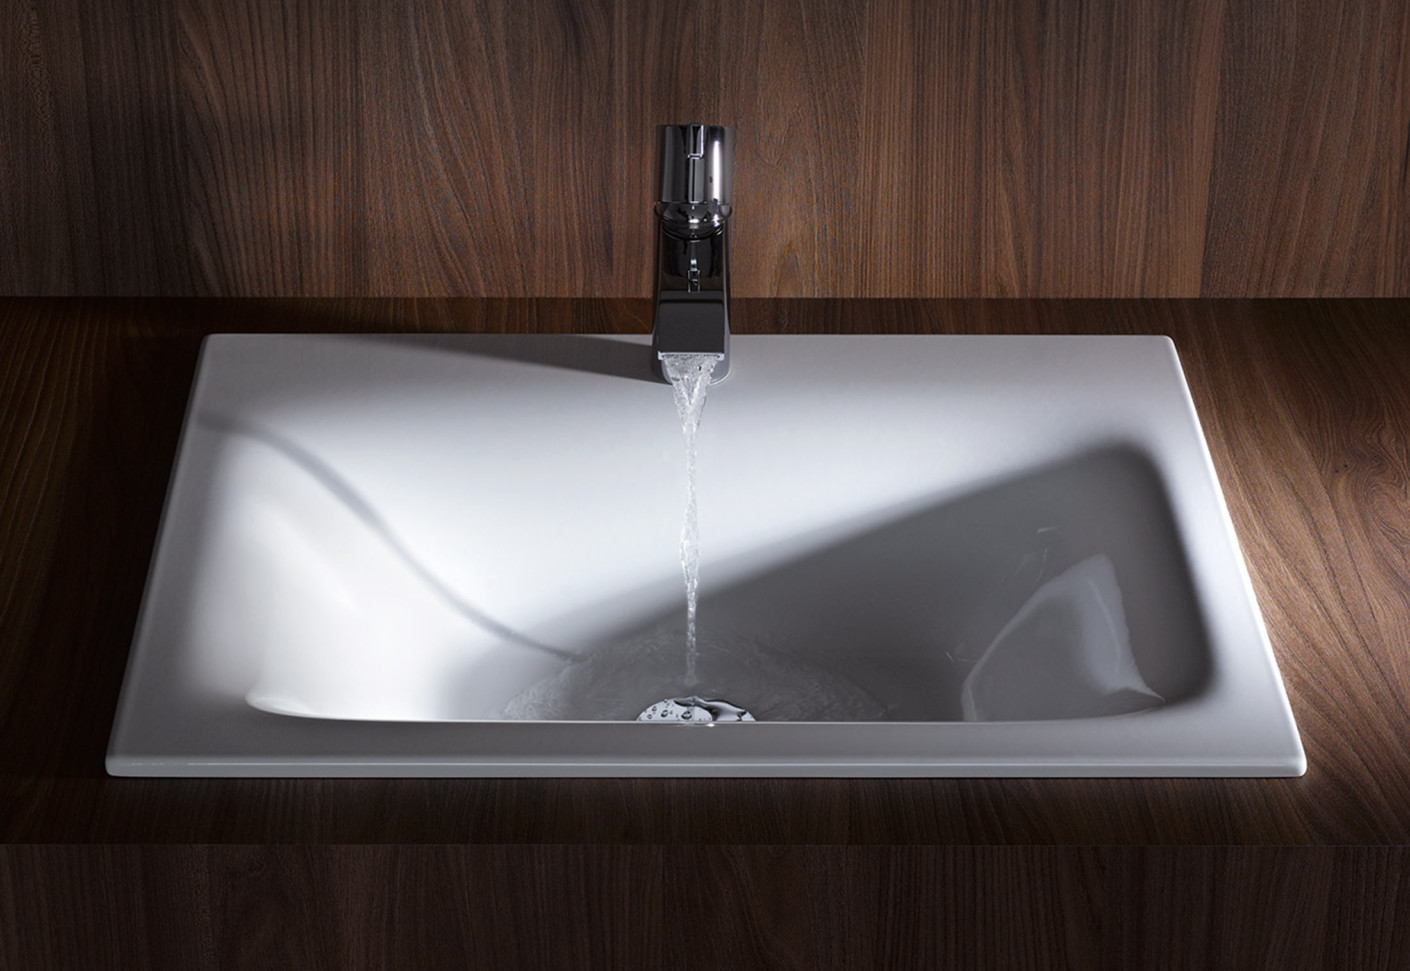 BETTELUX builtin washbasin by Bette  STYLEPARK